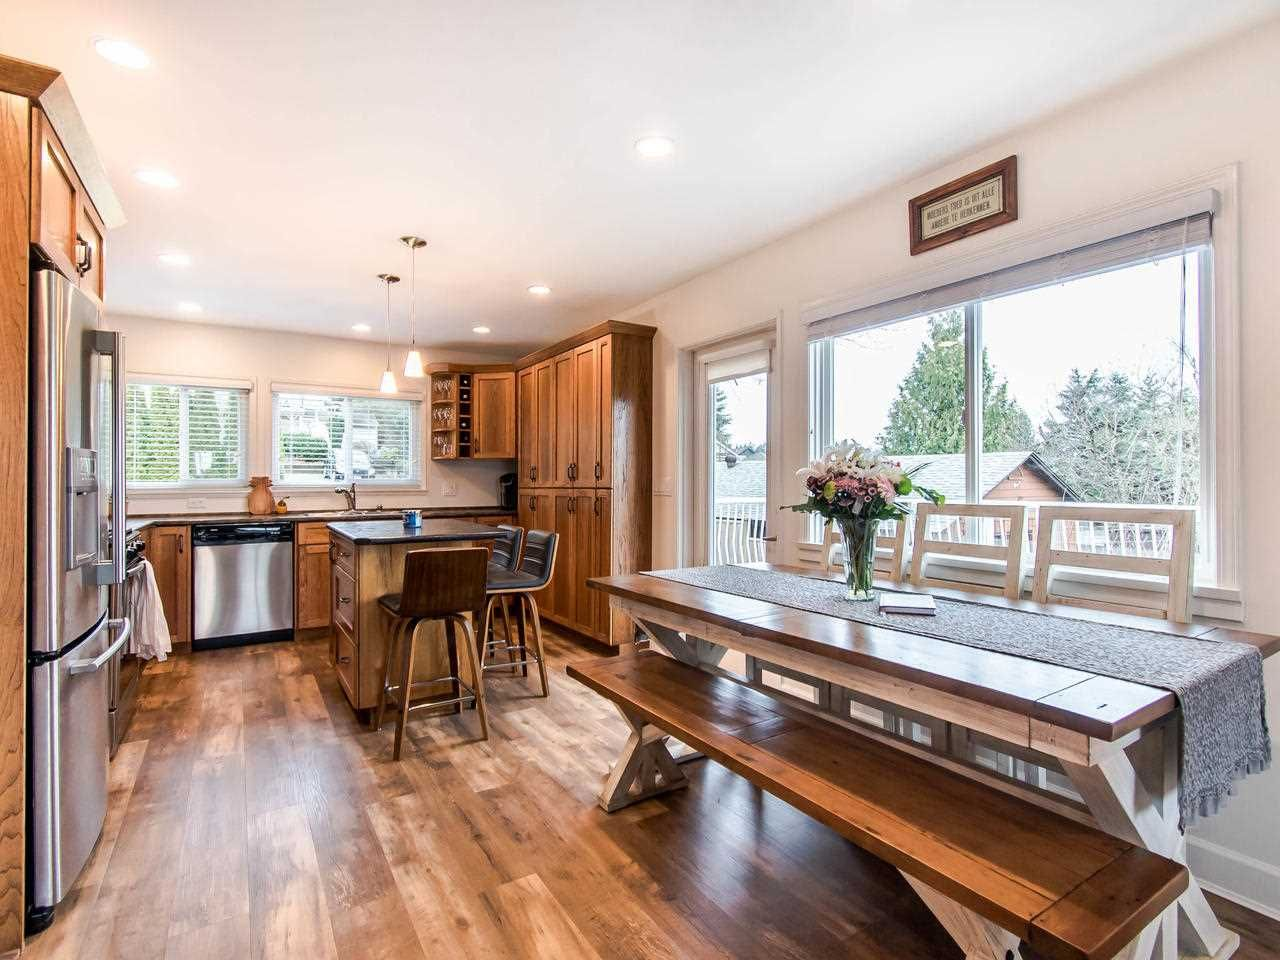 """Photo 4: Photos: 21744 48A Avenue in Langley: Murrayville House for sale in """"MURRAYVILLE"""" : MLS®# R2451789"""